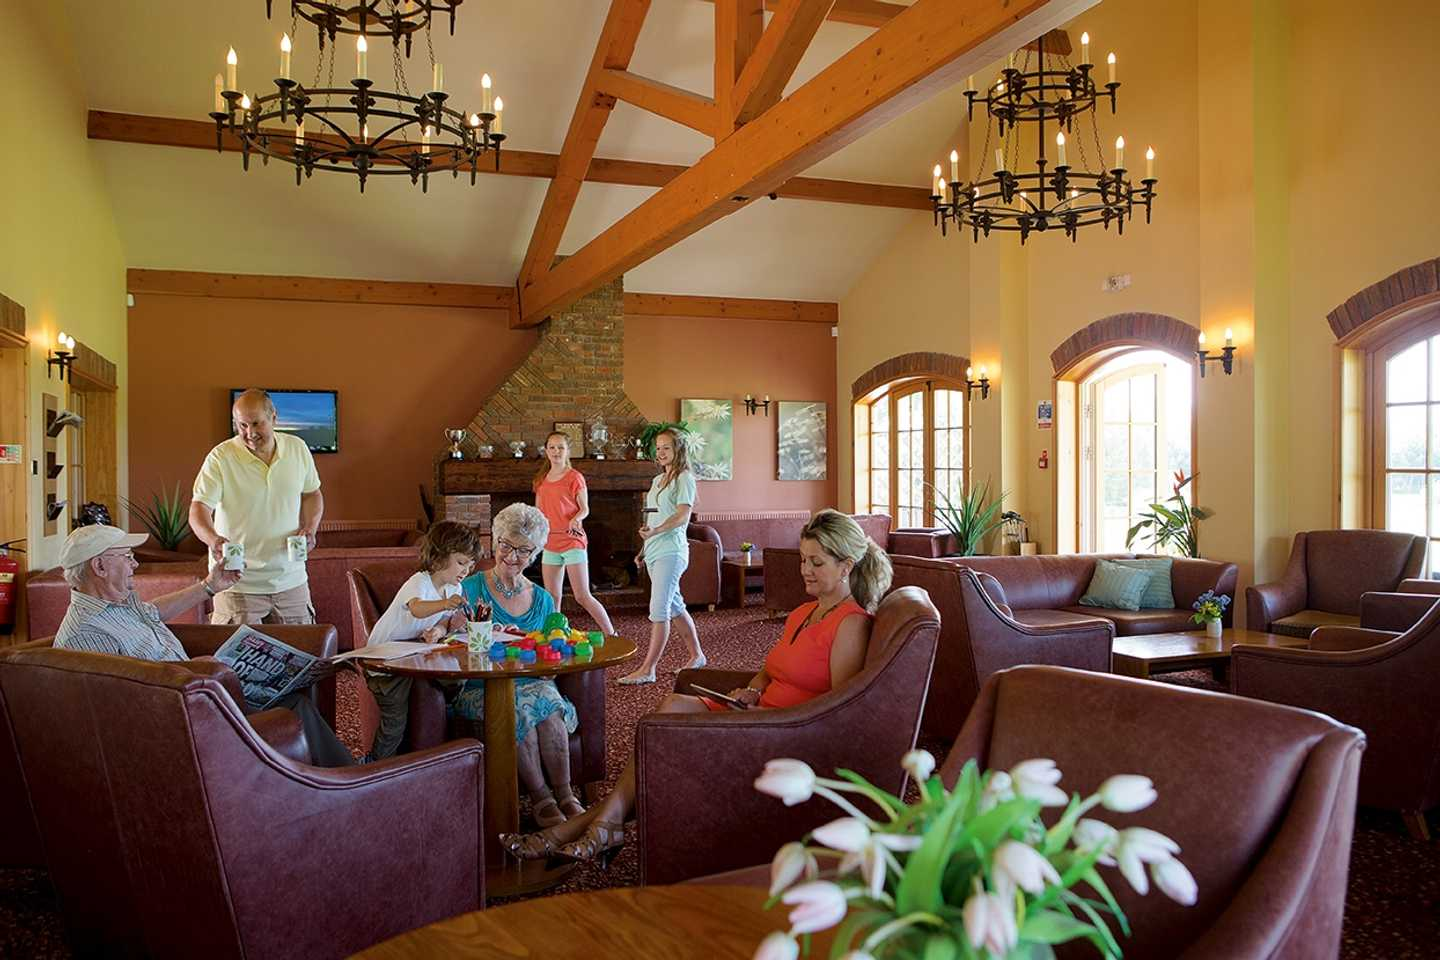 The Owners' Lounge at Far grange